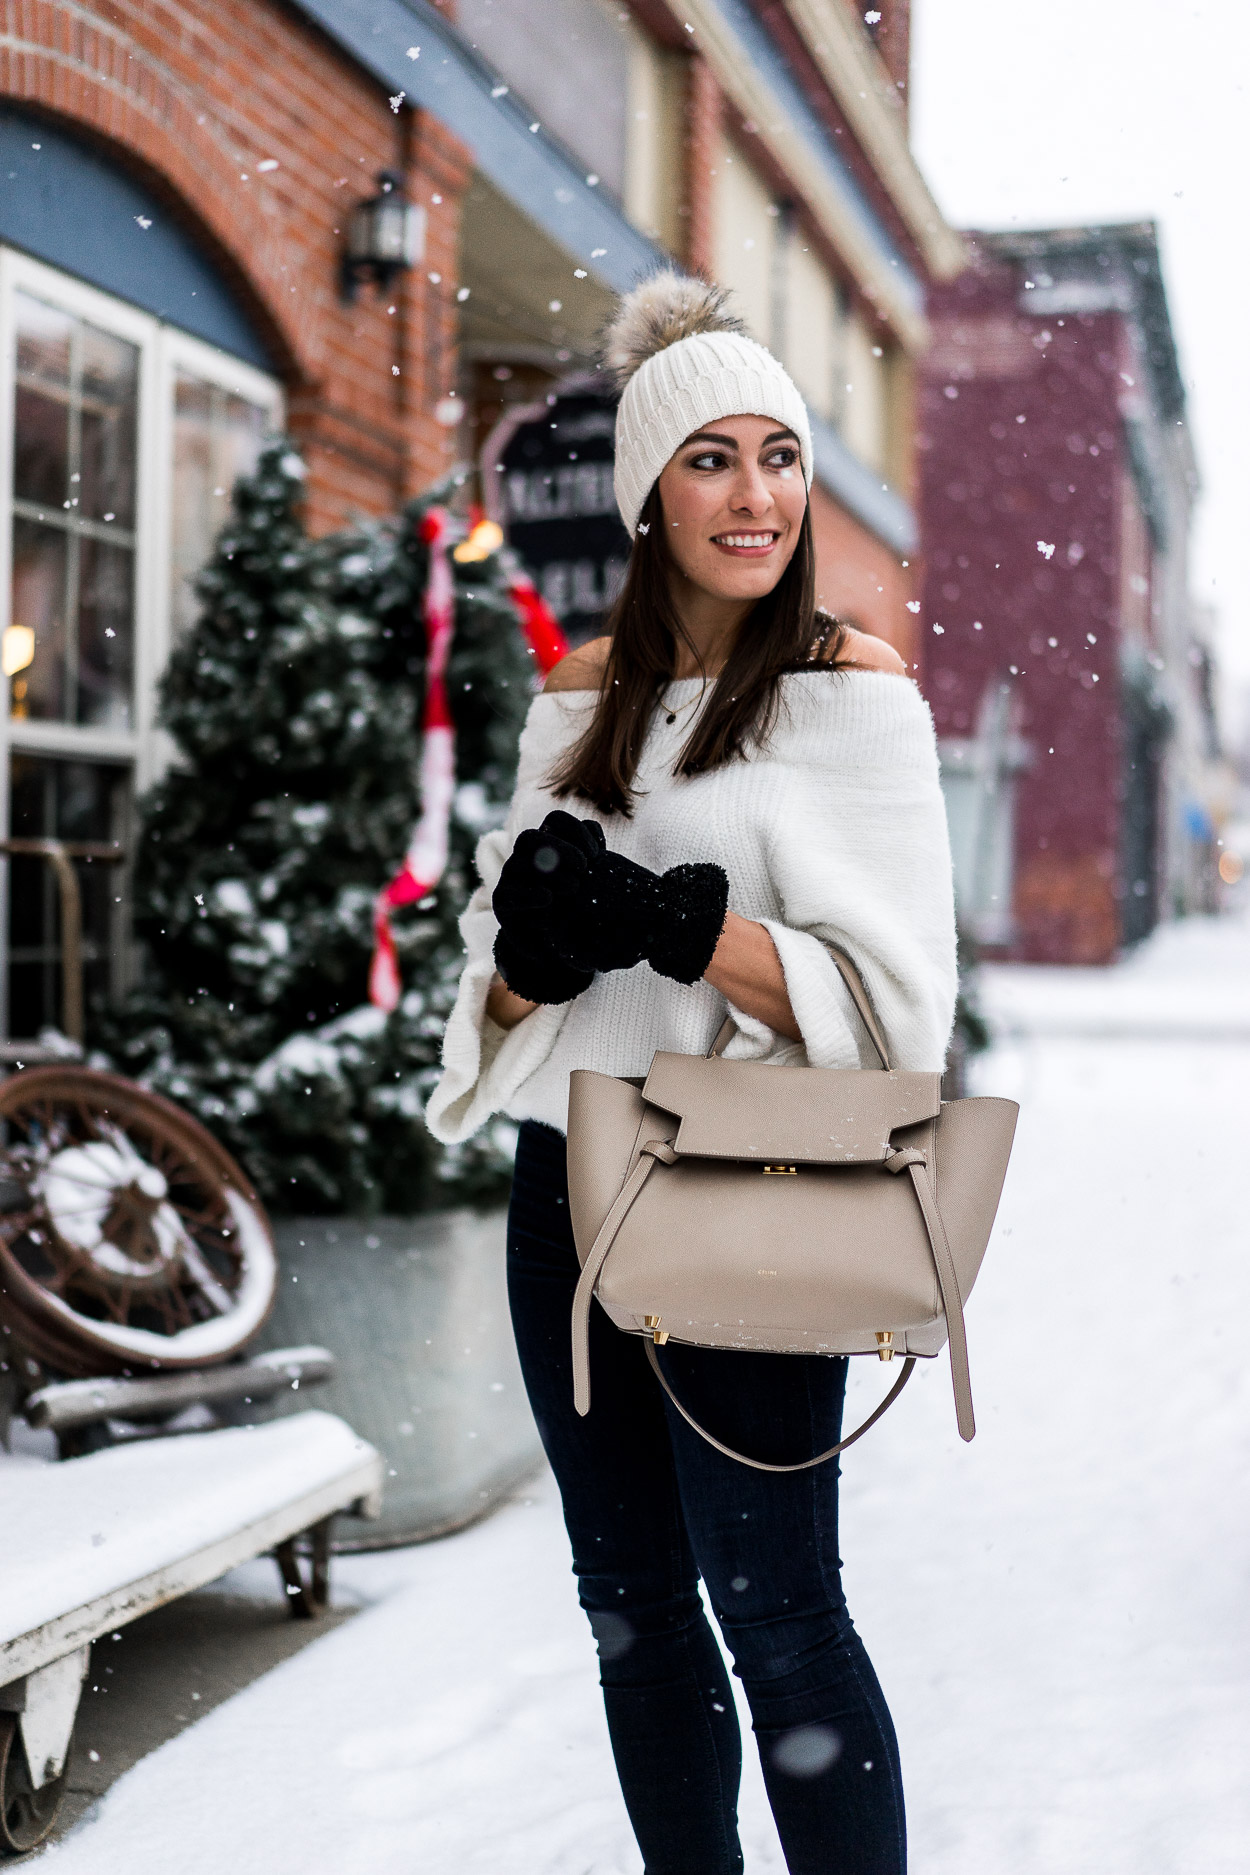 Cozy sweaters make for a great date night outfit a la Amanda of A Glam Lifestyle blog in white Chicwish sweater